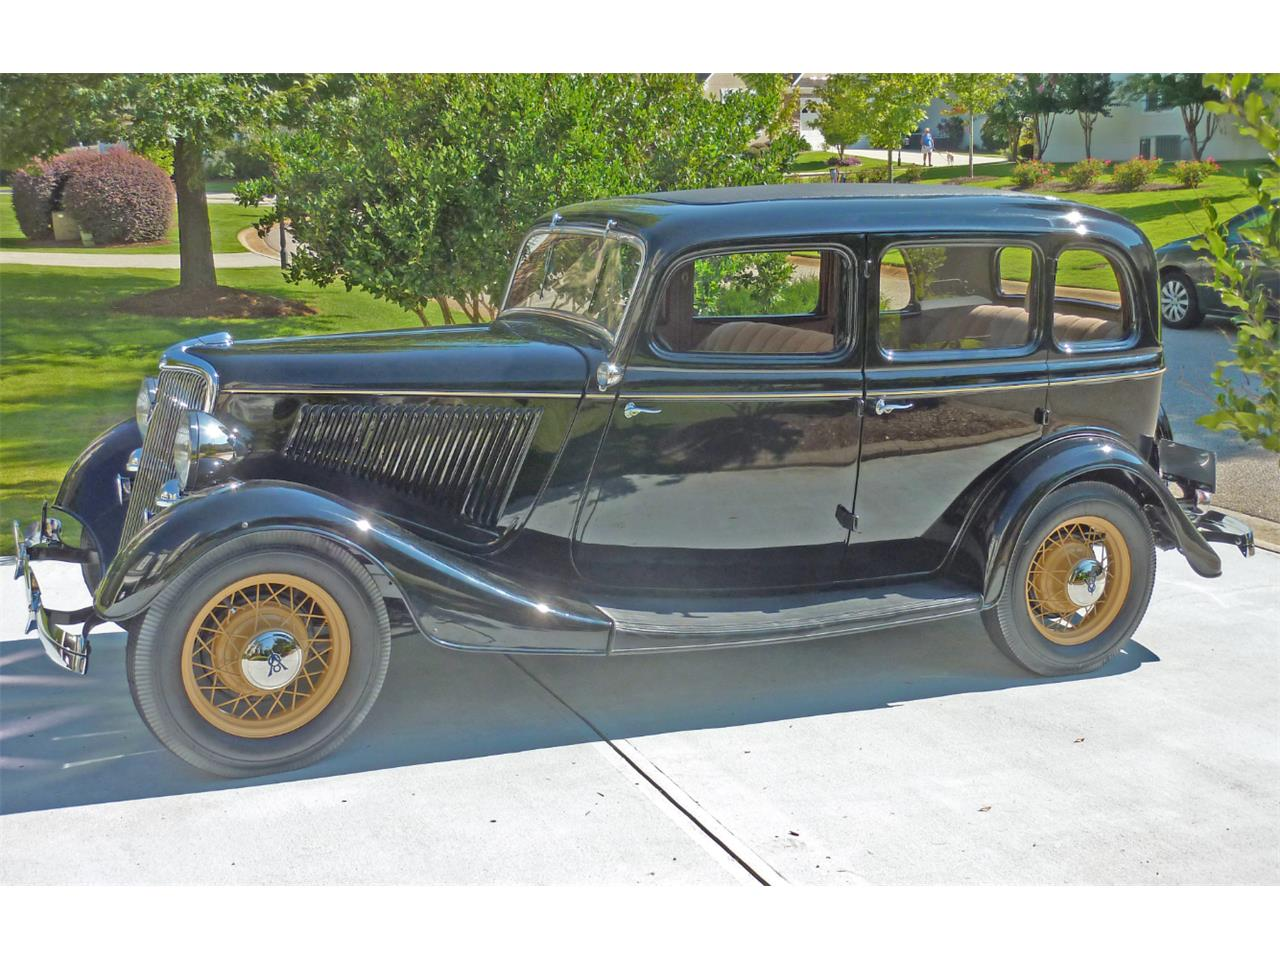 Large Picture of 1934 Ford Sedan located in Georgia - $46,000.00 - ISZK